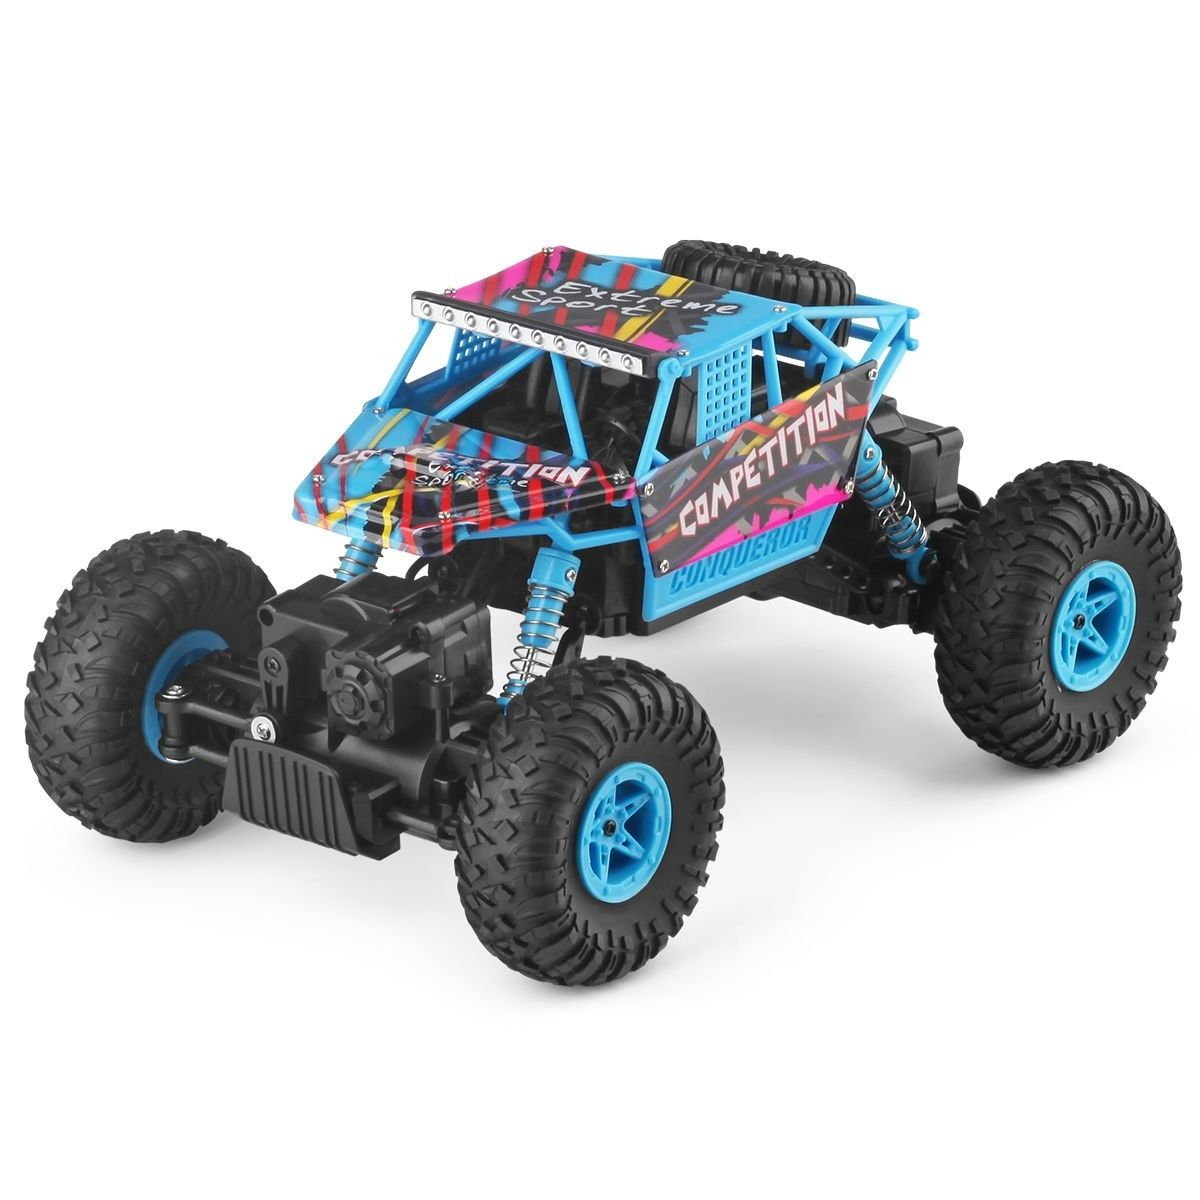 Cars 4 toys  Off road RC  wd Fun Order yours today Color choices  Toys